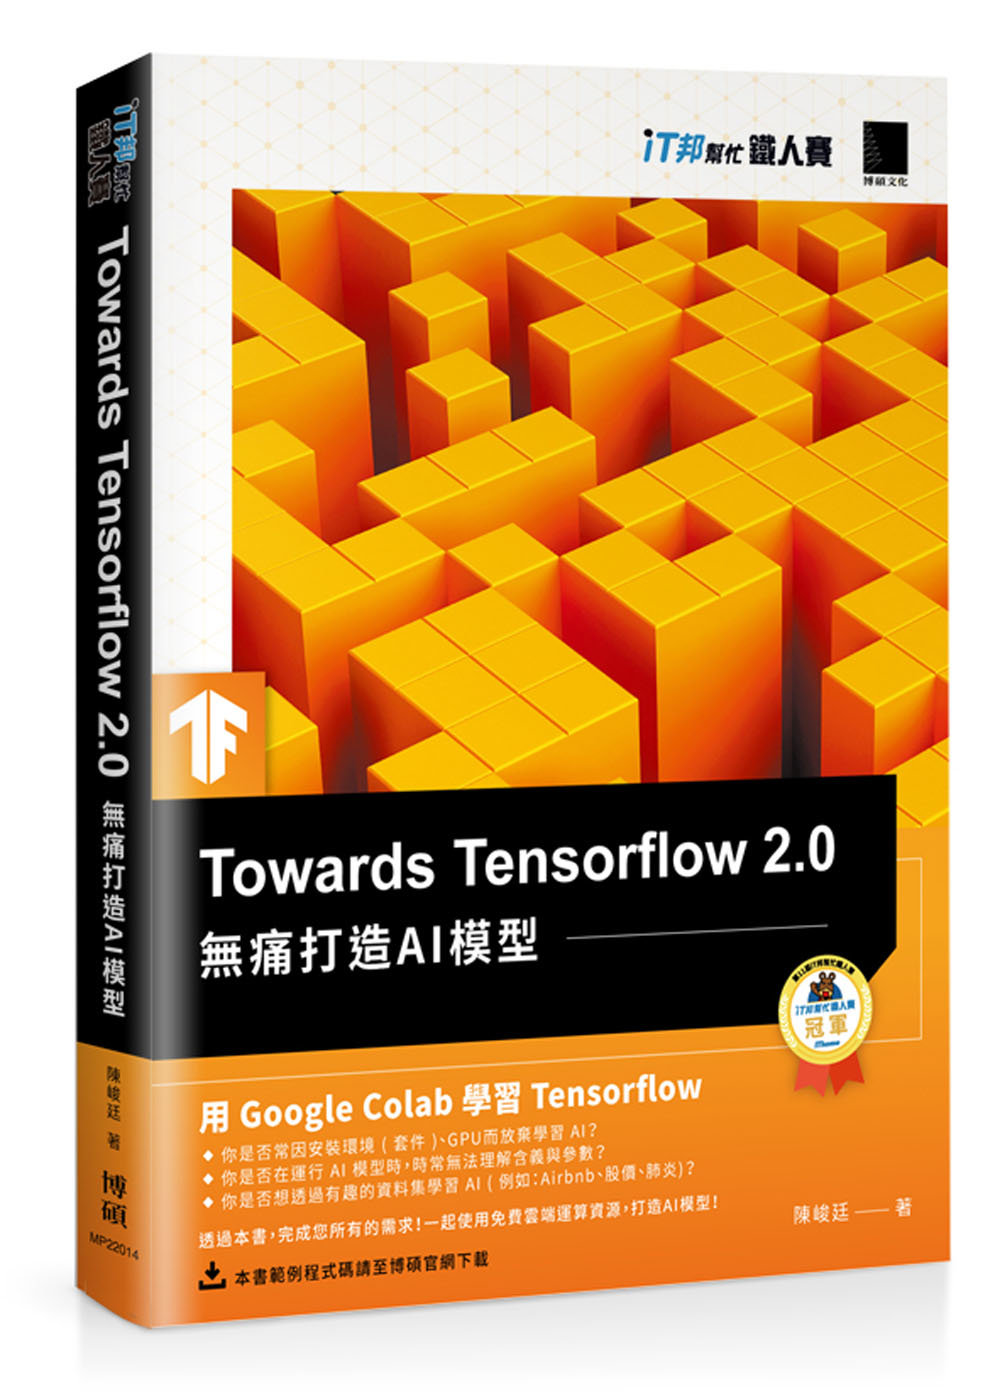 Towards Tensorflow 2.0:無痛打造AI模型(iT邦幫忙鐵人賽系列書)-preview-15